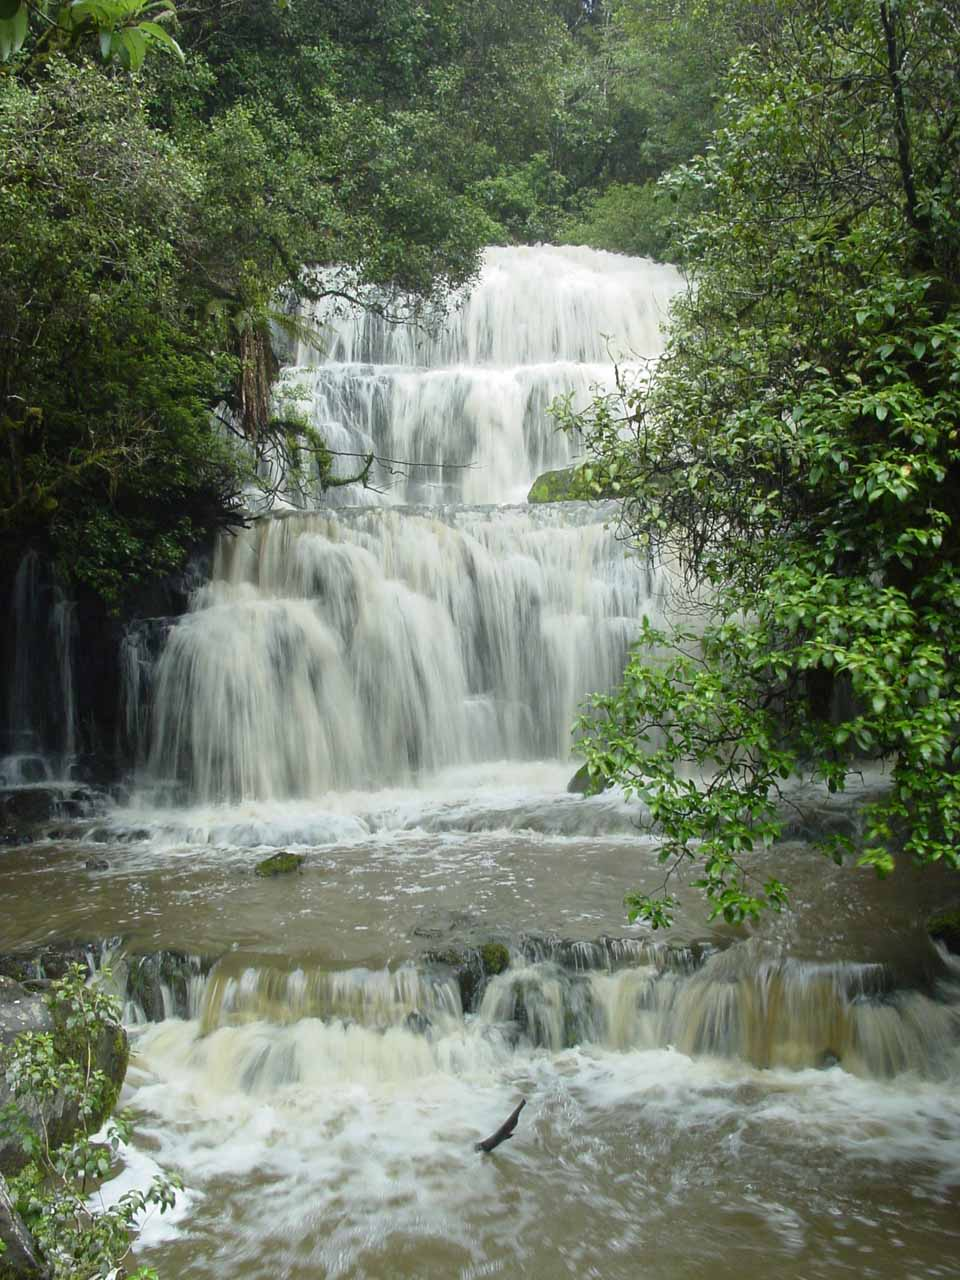 The state of Purakaunui Falls during our early December 2004 visit was actually a little rain swollen